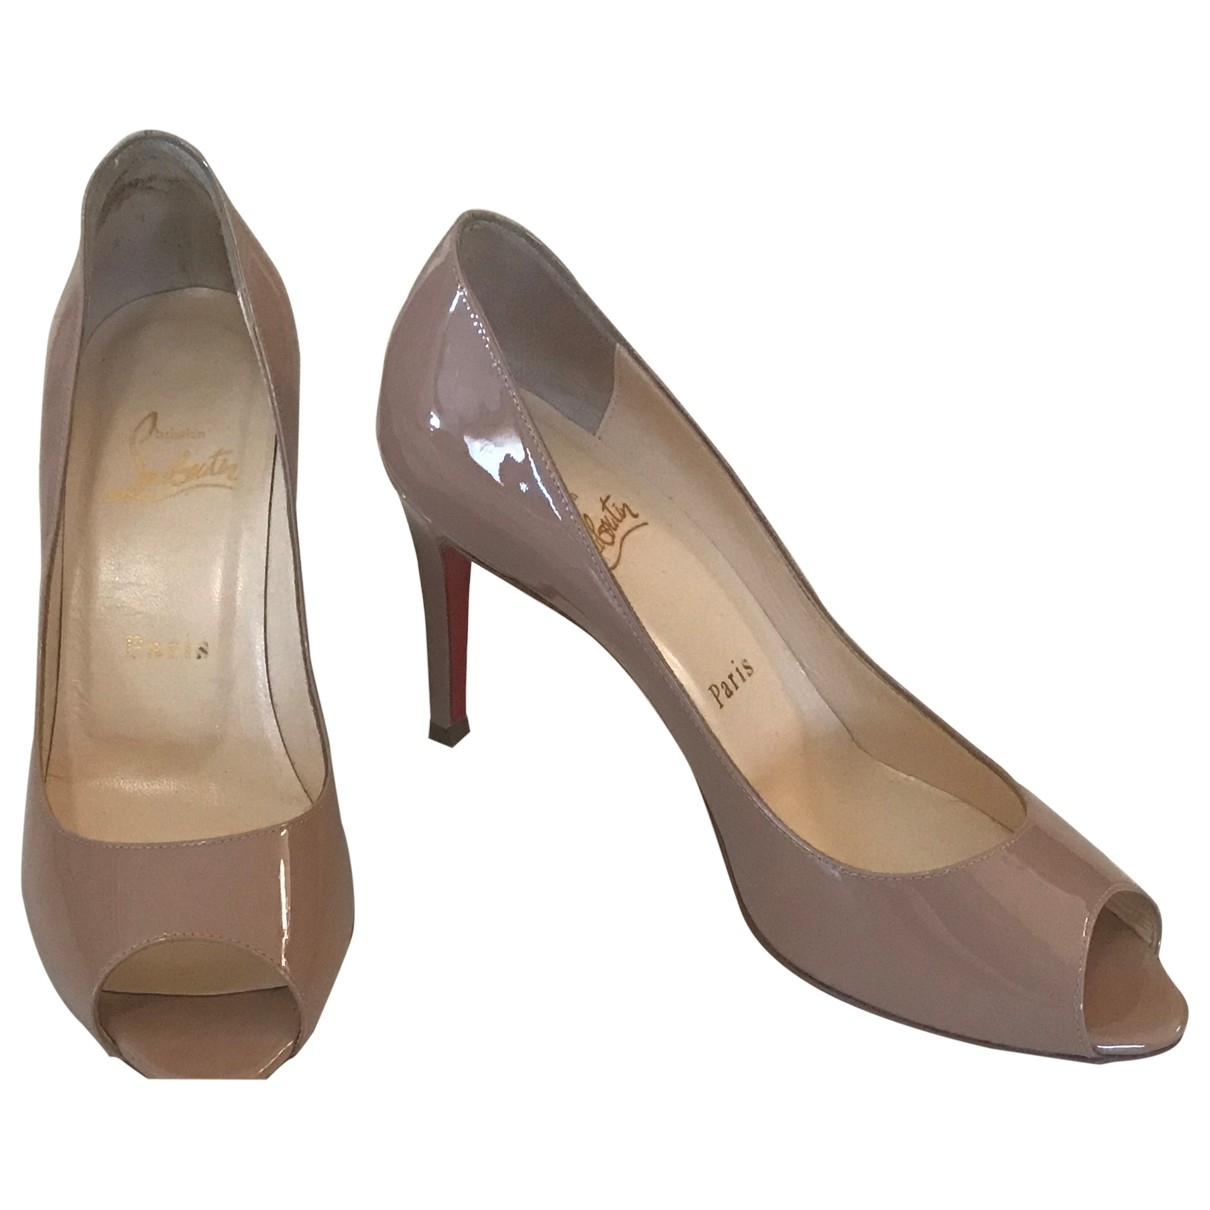 Christian Louboutin Lady Peep Beige Patent leather Heels for Women 36 EU